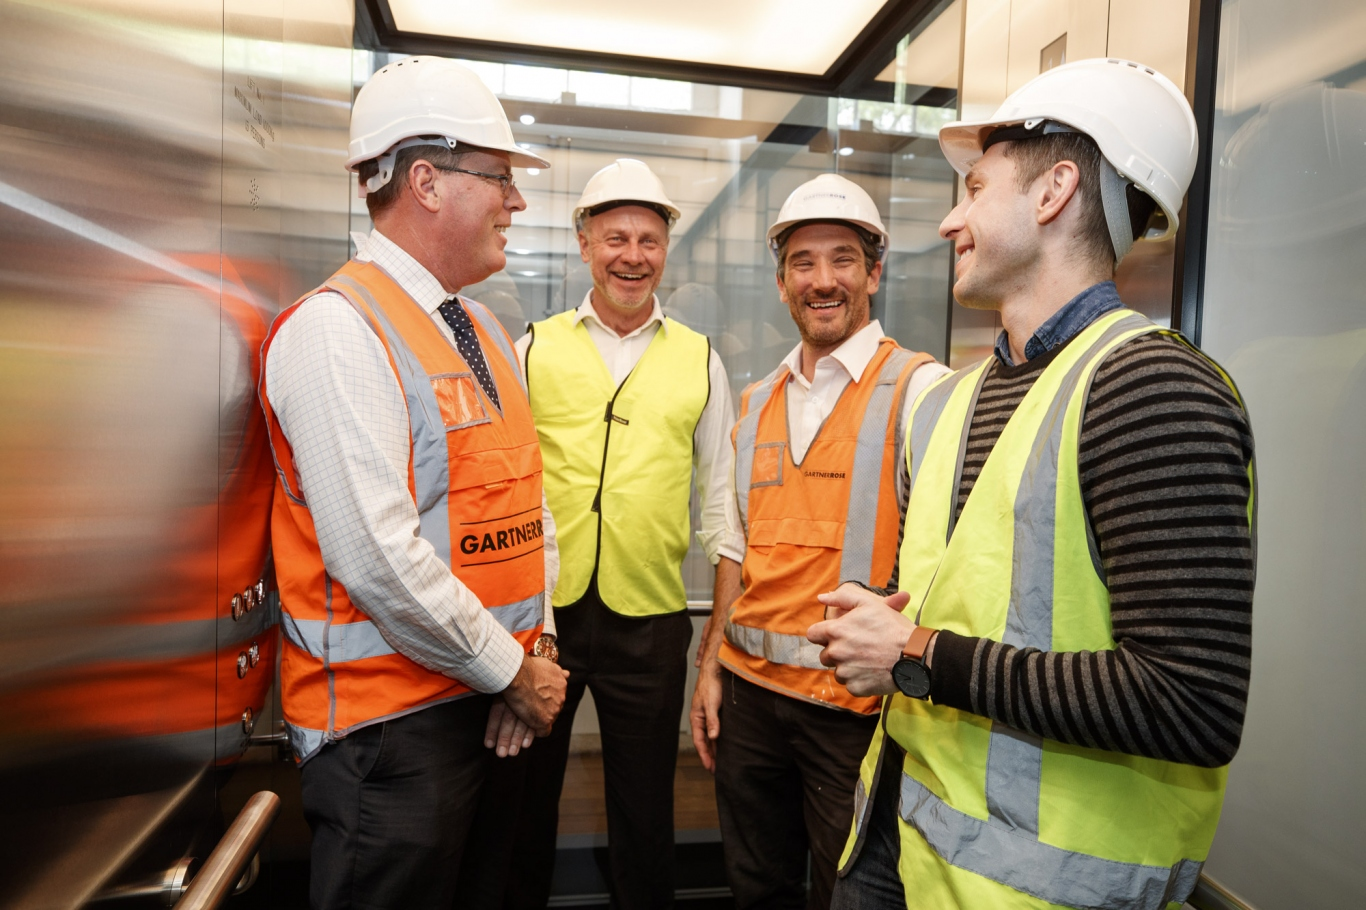 Group of four men in white hard hats and high vis vests in glass lift.